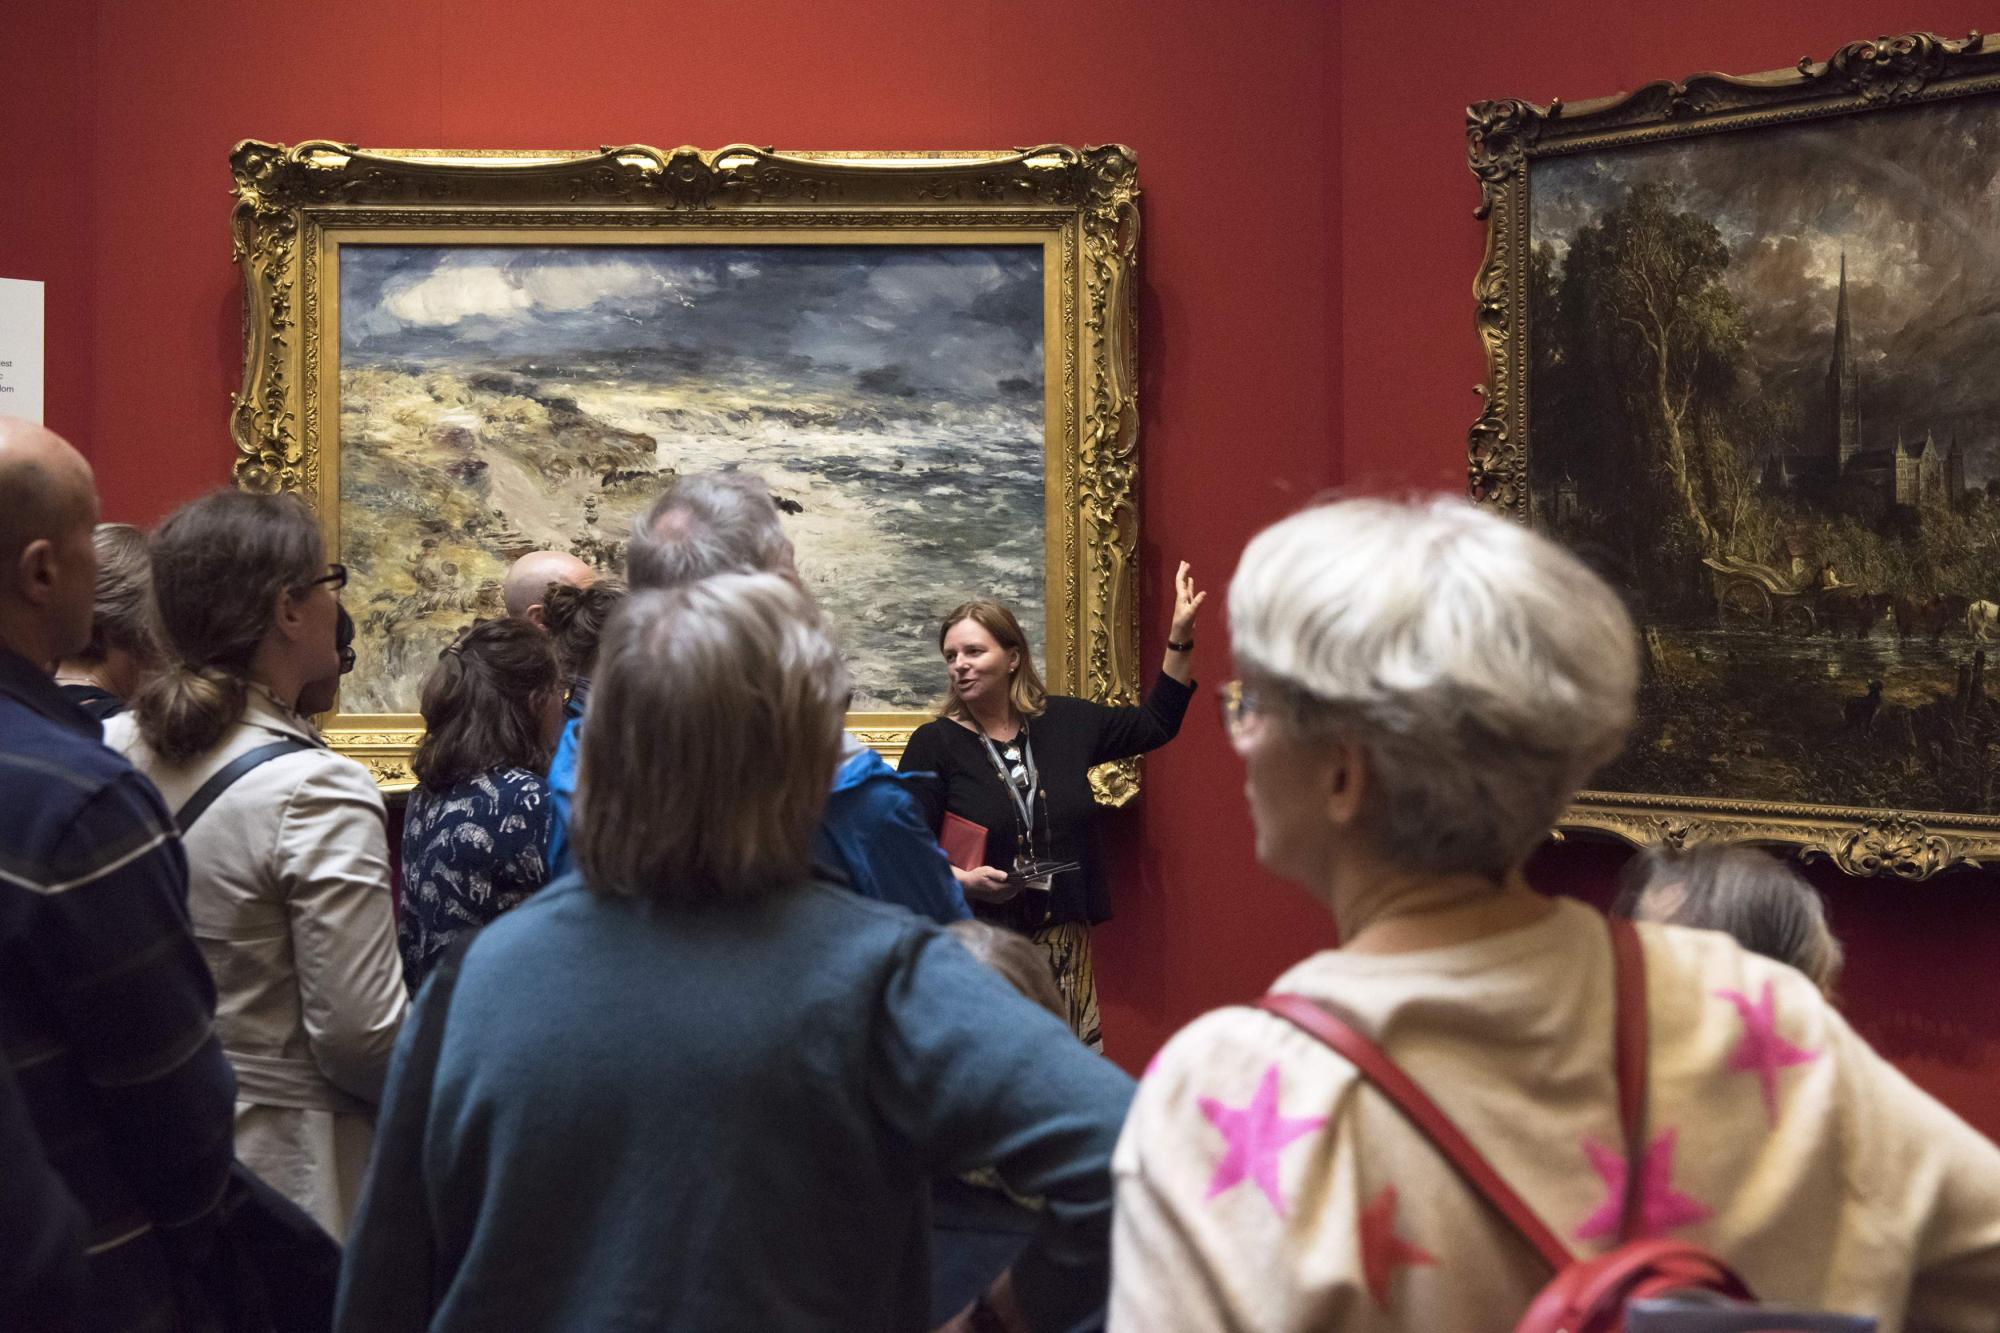 Visitors gathered around a tour guide who stands in front of paintings by Constable and McTaggert